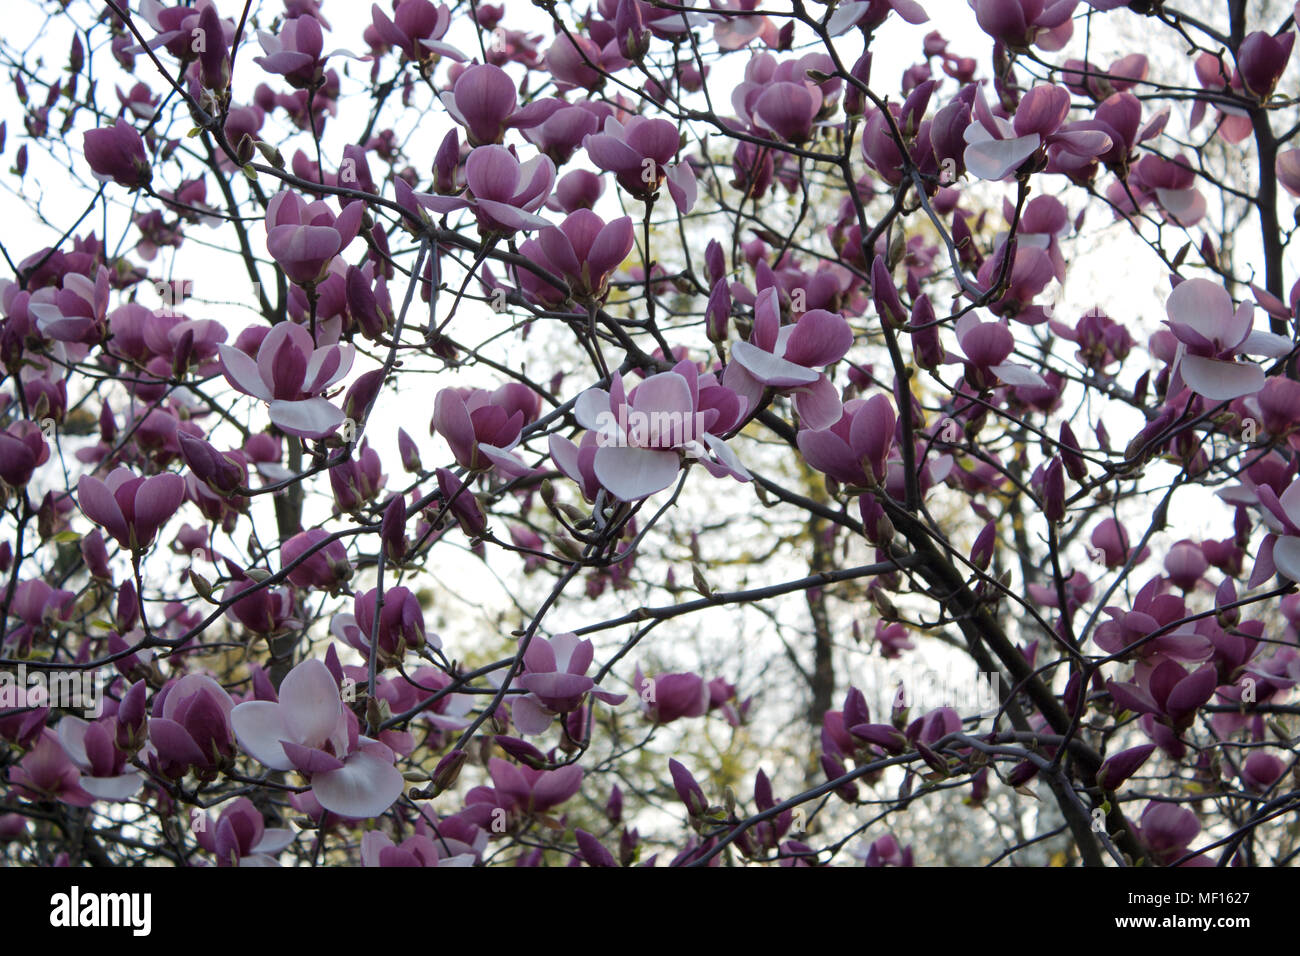 Magnolia Tree Branch In Bloom With Purple And White Flowers Stock